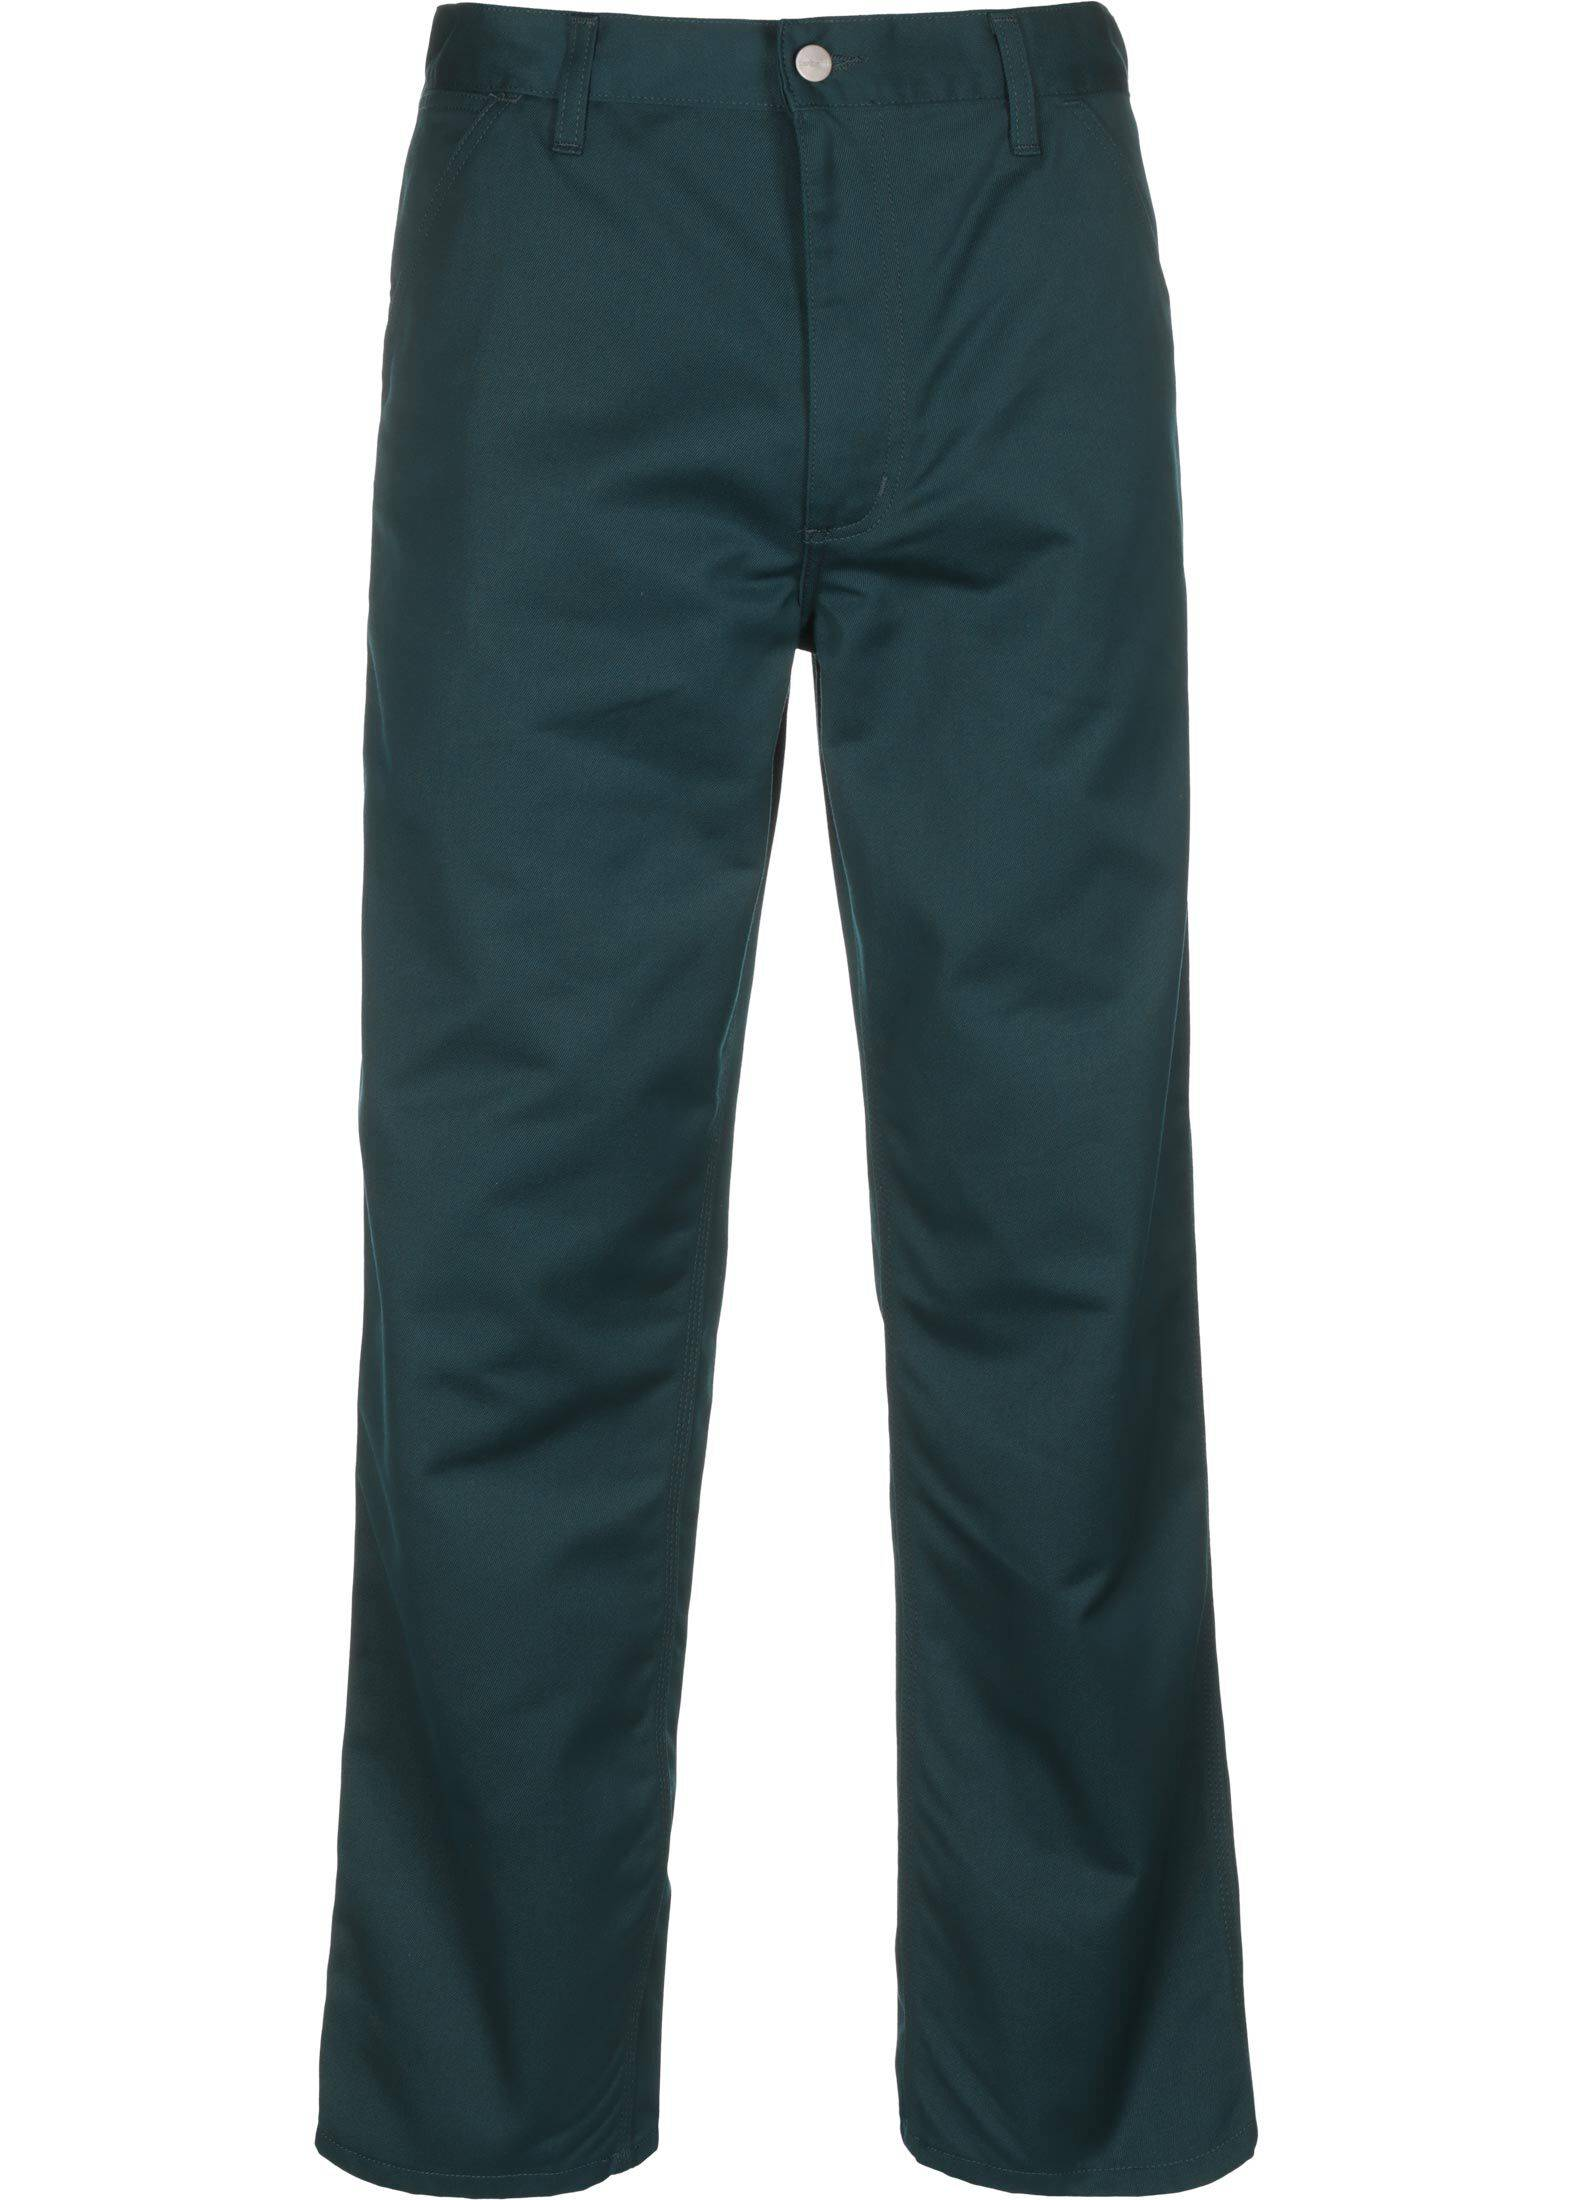 Carhartt WIP Simple, taille 34/32, homme, turquoise